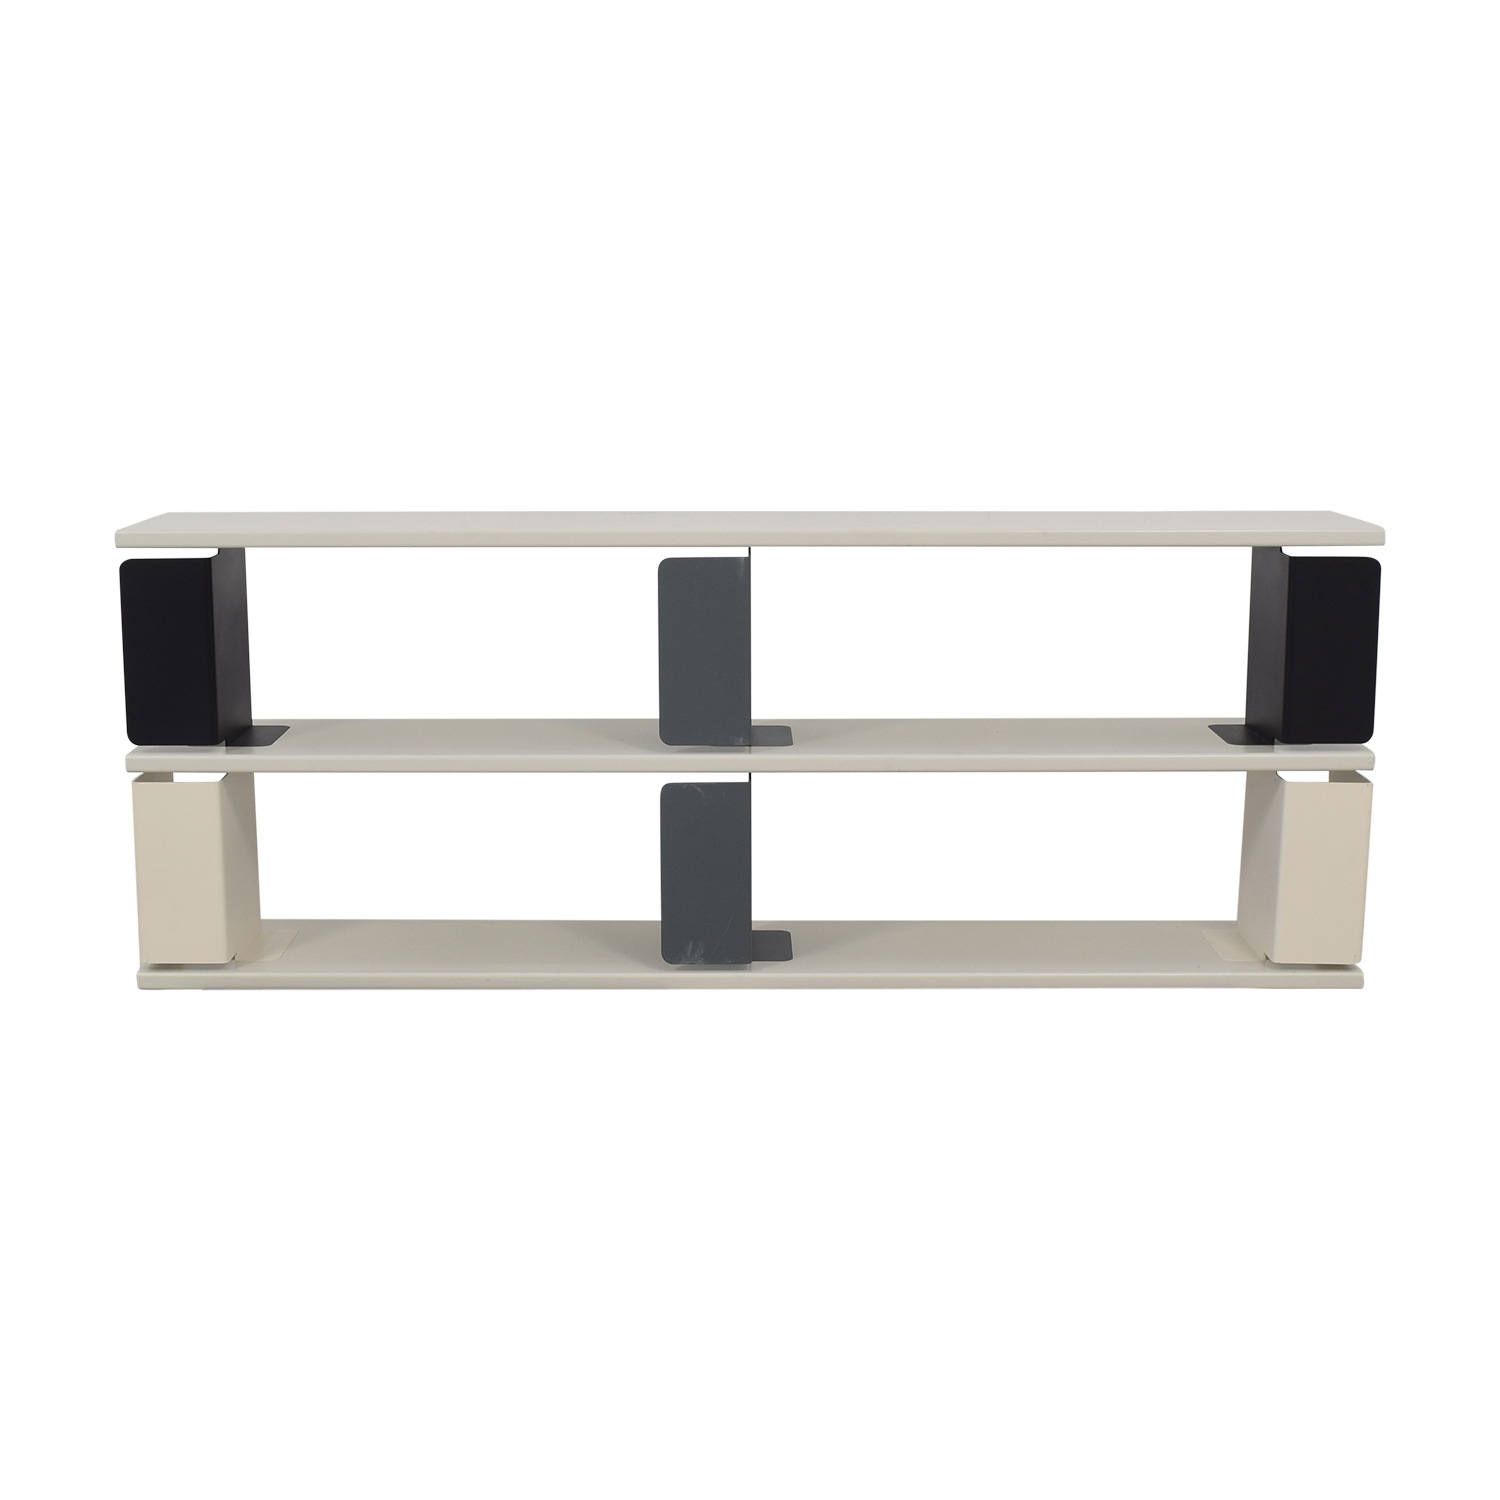 ClassiCon ClassiCon Paris Three Shelf Unit by Barber & Osgerby nyc